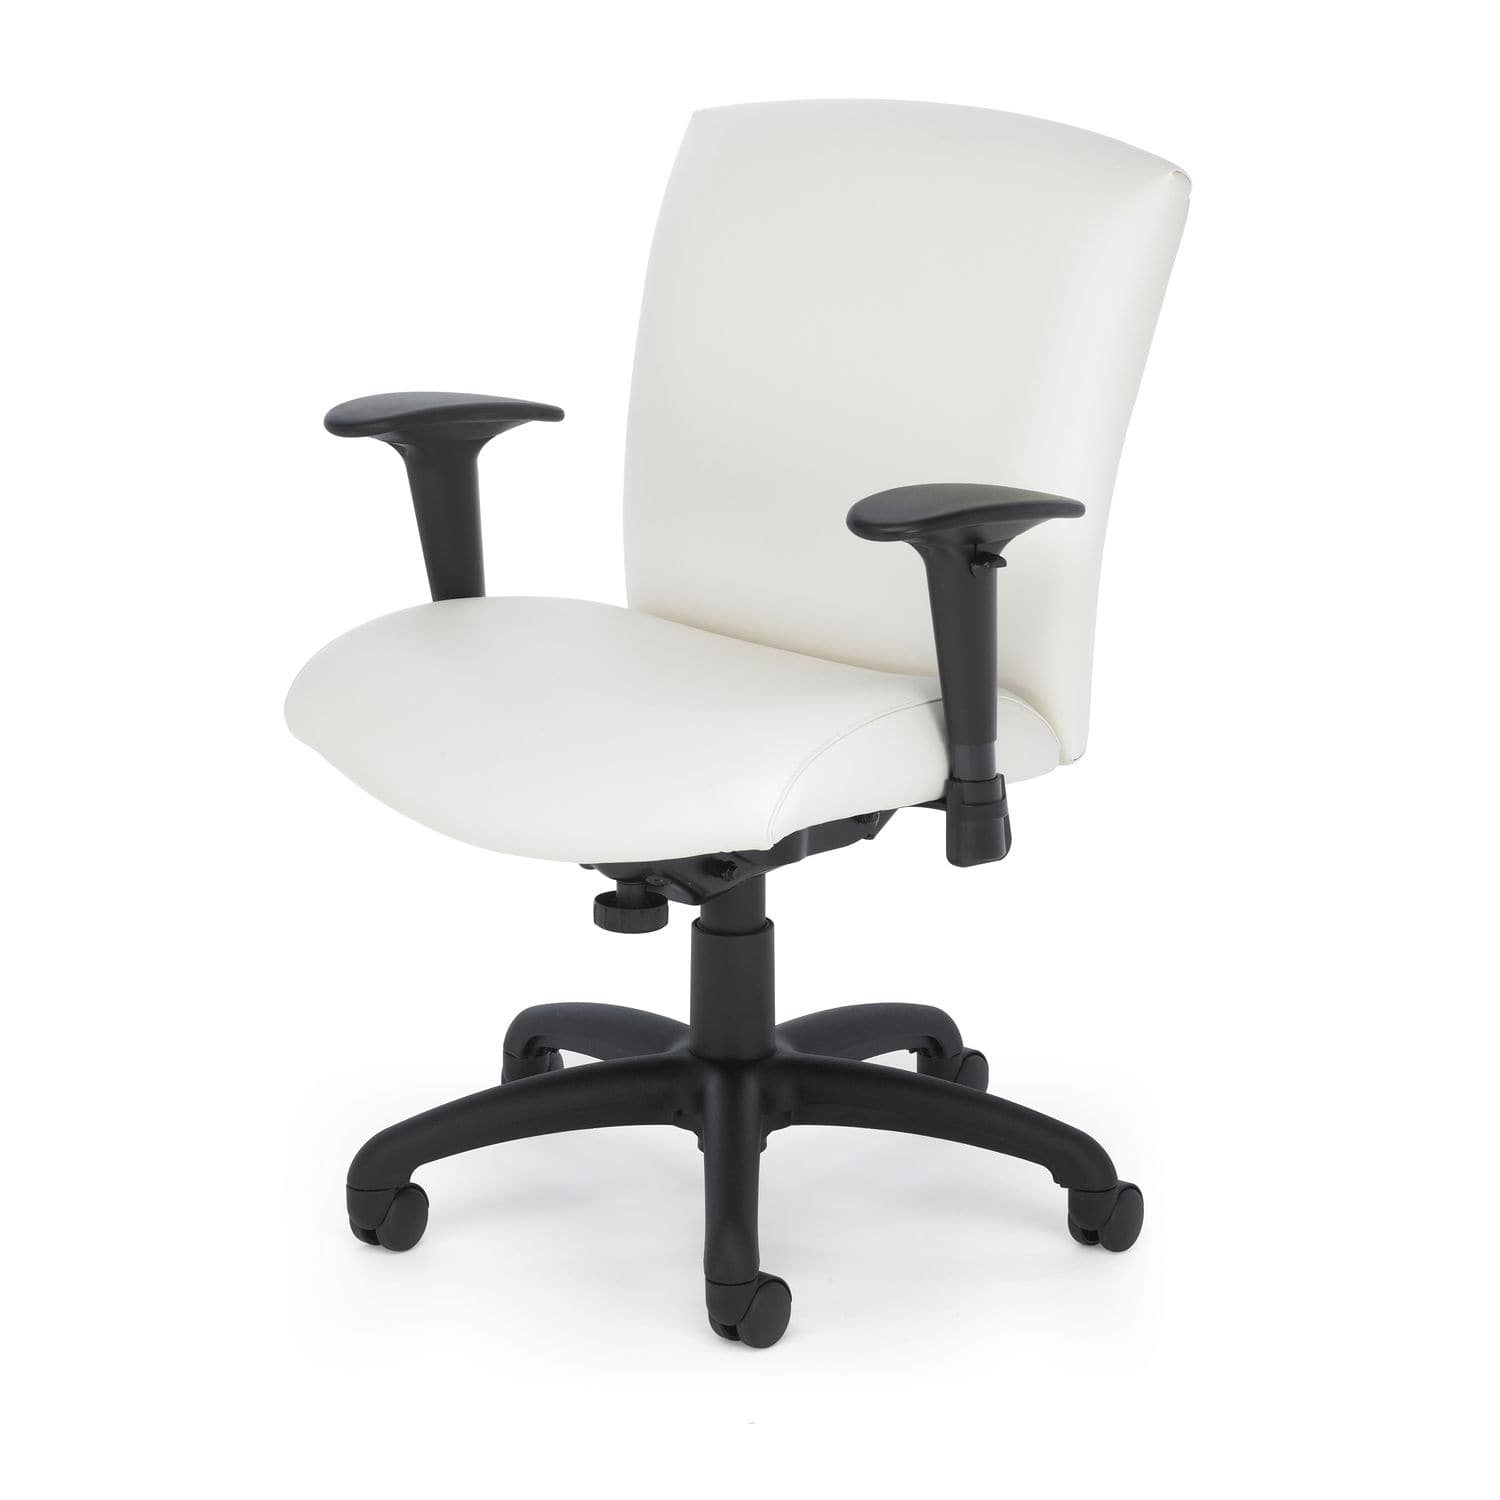 fice chair with armrests on casters height adjustable